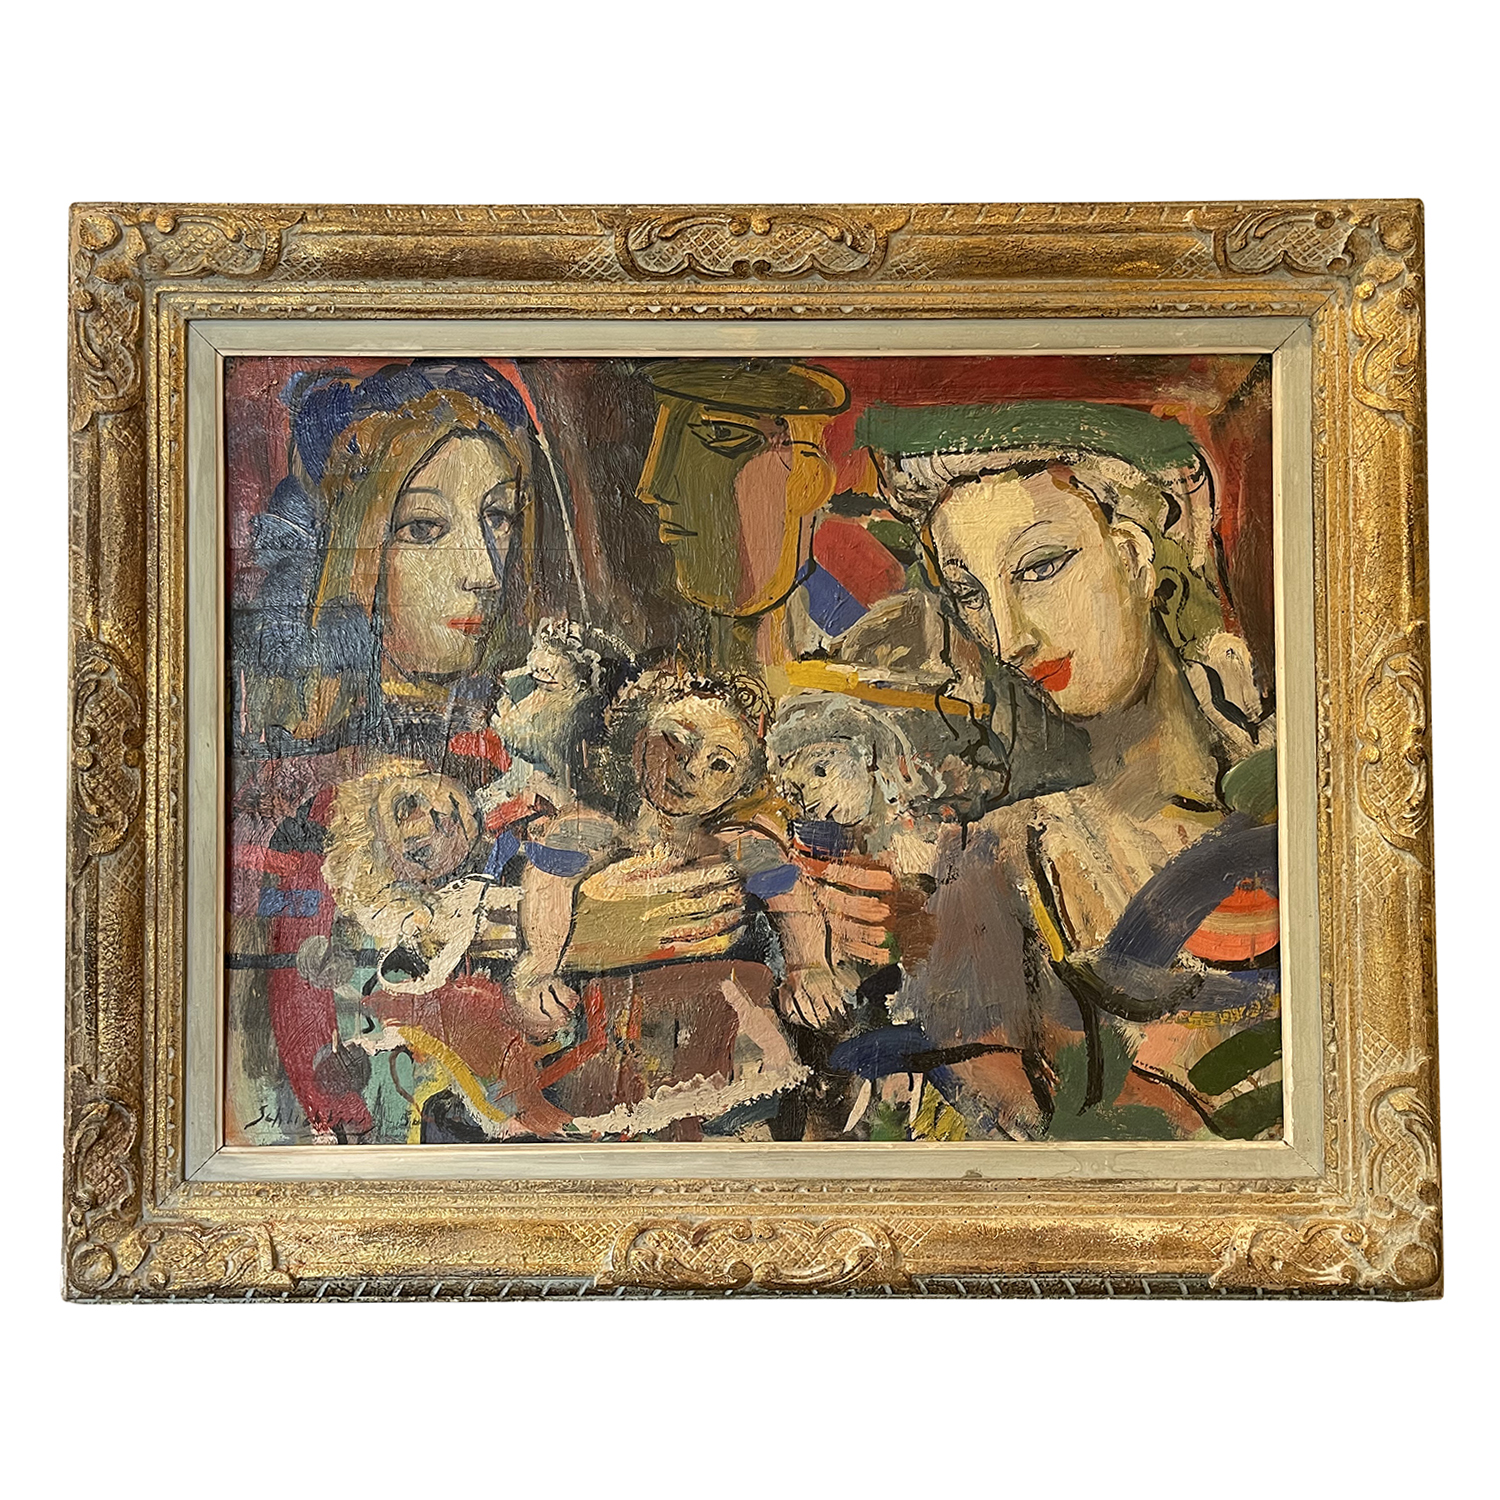 20th Century Russian Oil Painting of Lovers in the Manner of Marc Chagall